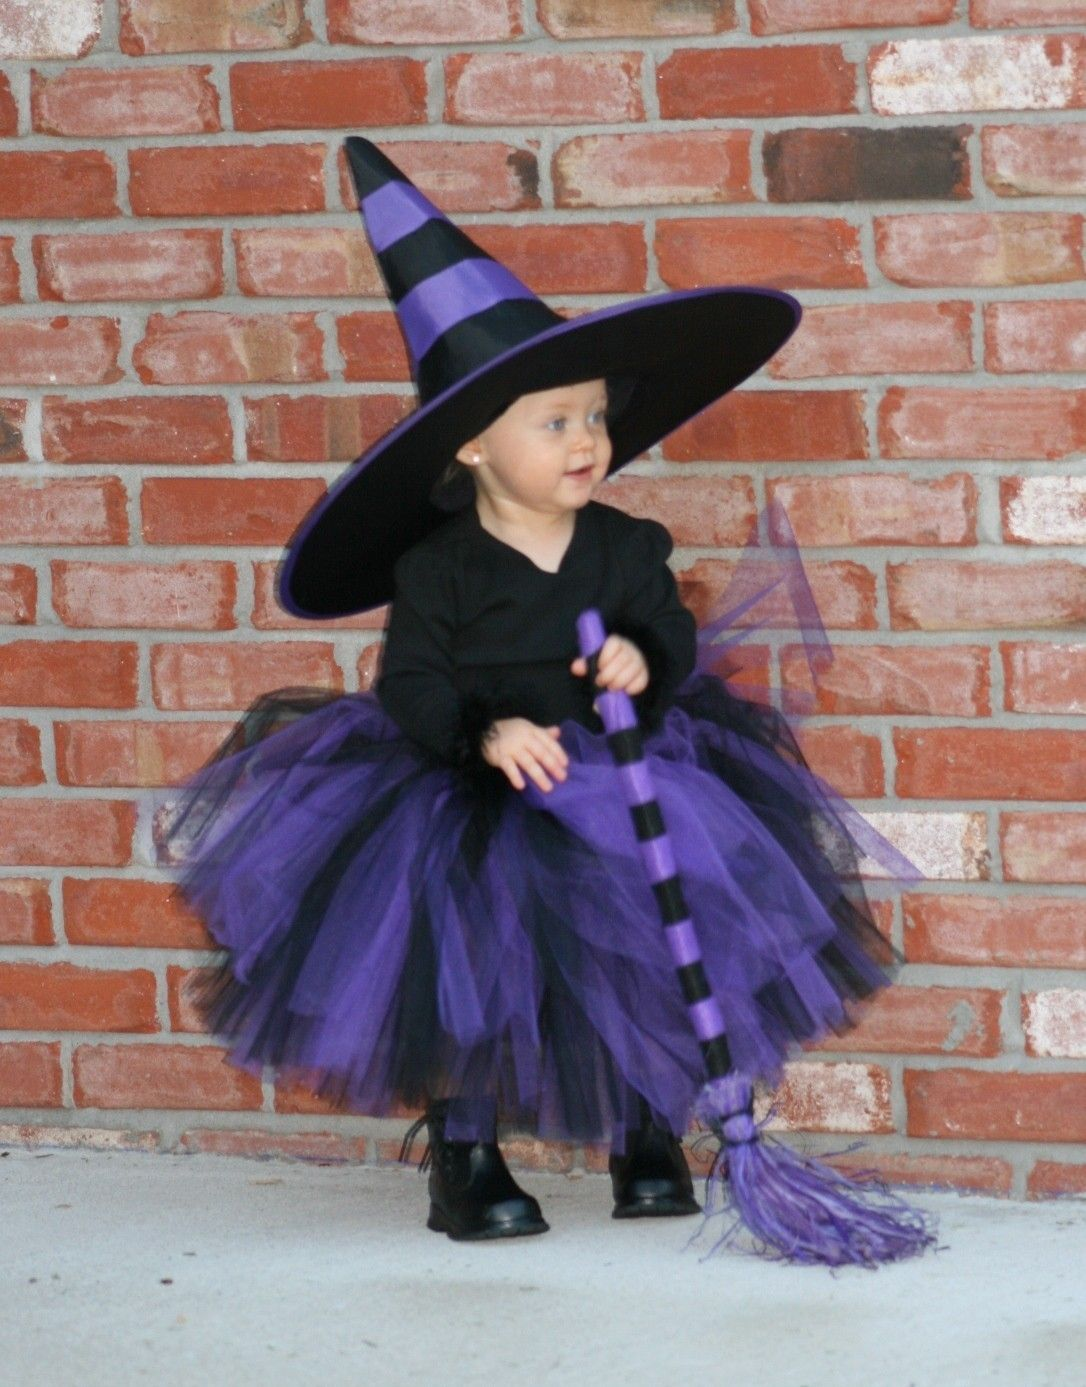 Is It Weird That I Want My Halloween Costume To Look